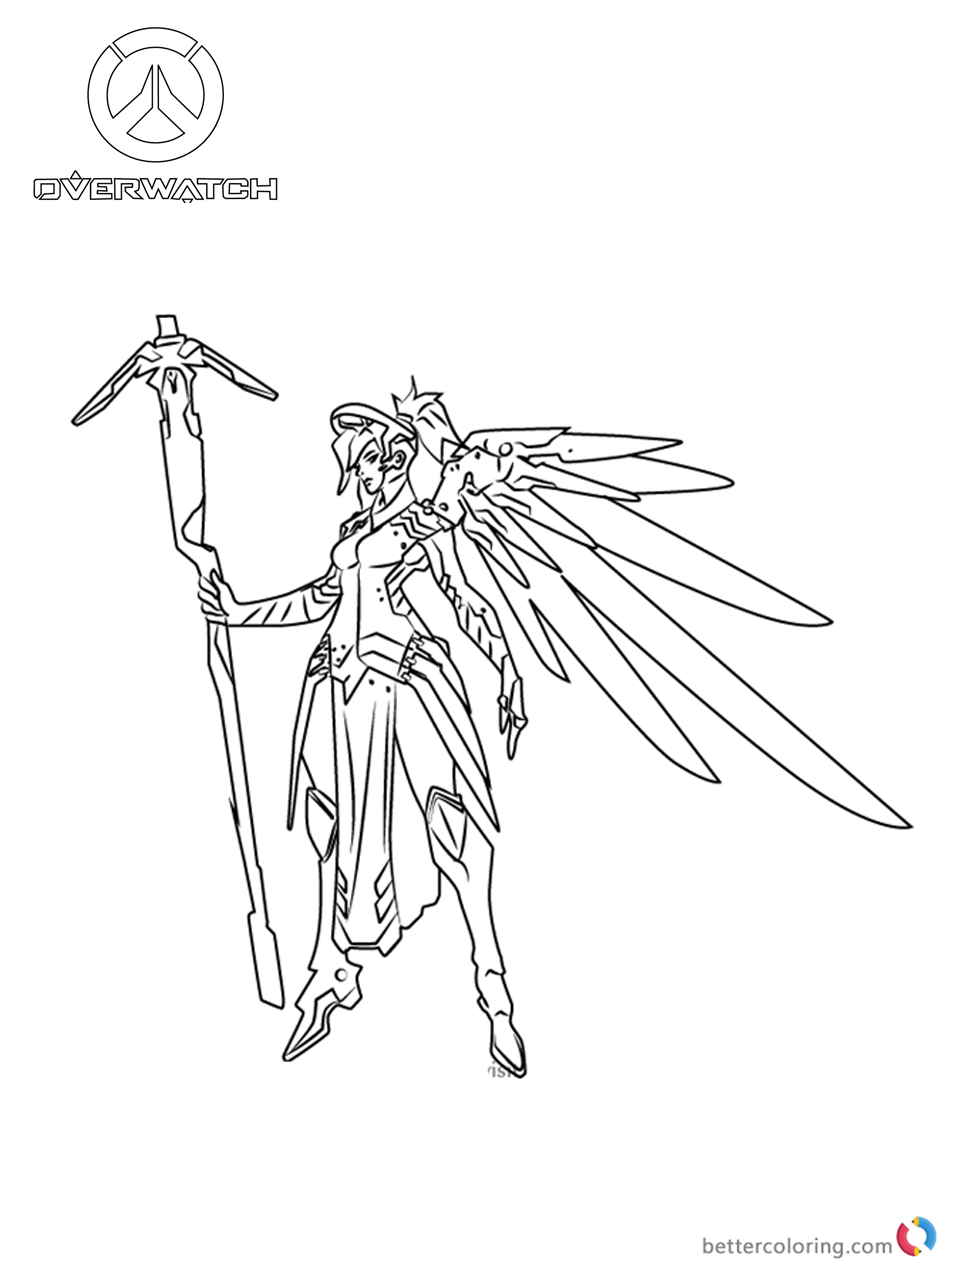 Boys Like Girls Wallpaper Mercy From Overwatch Coloring Pages Free Printable